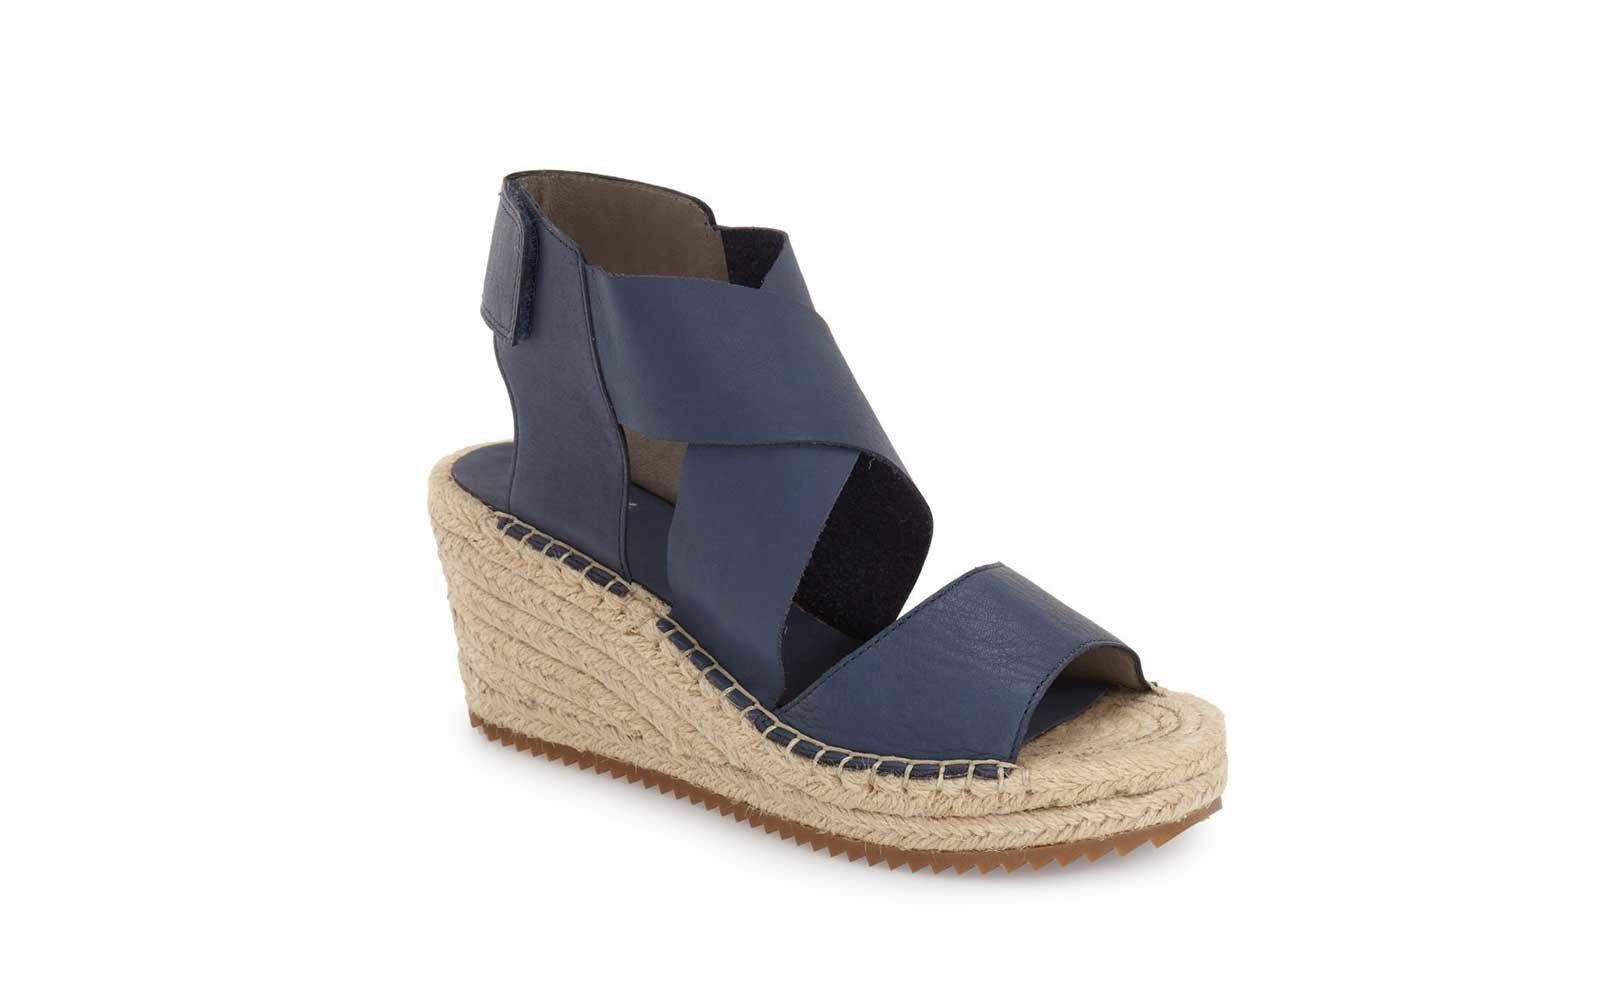 Walkable Wedges: Eileen Fisher 'Willow' Espadrille Wedge Sandal